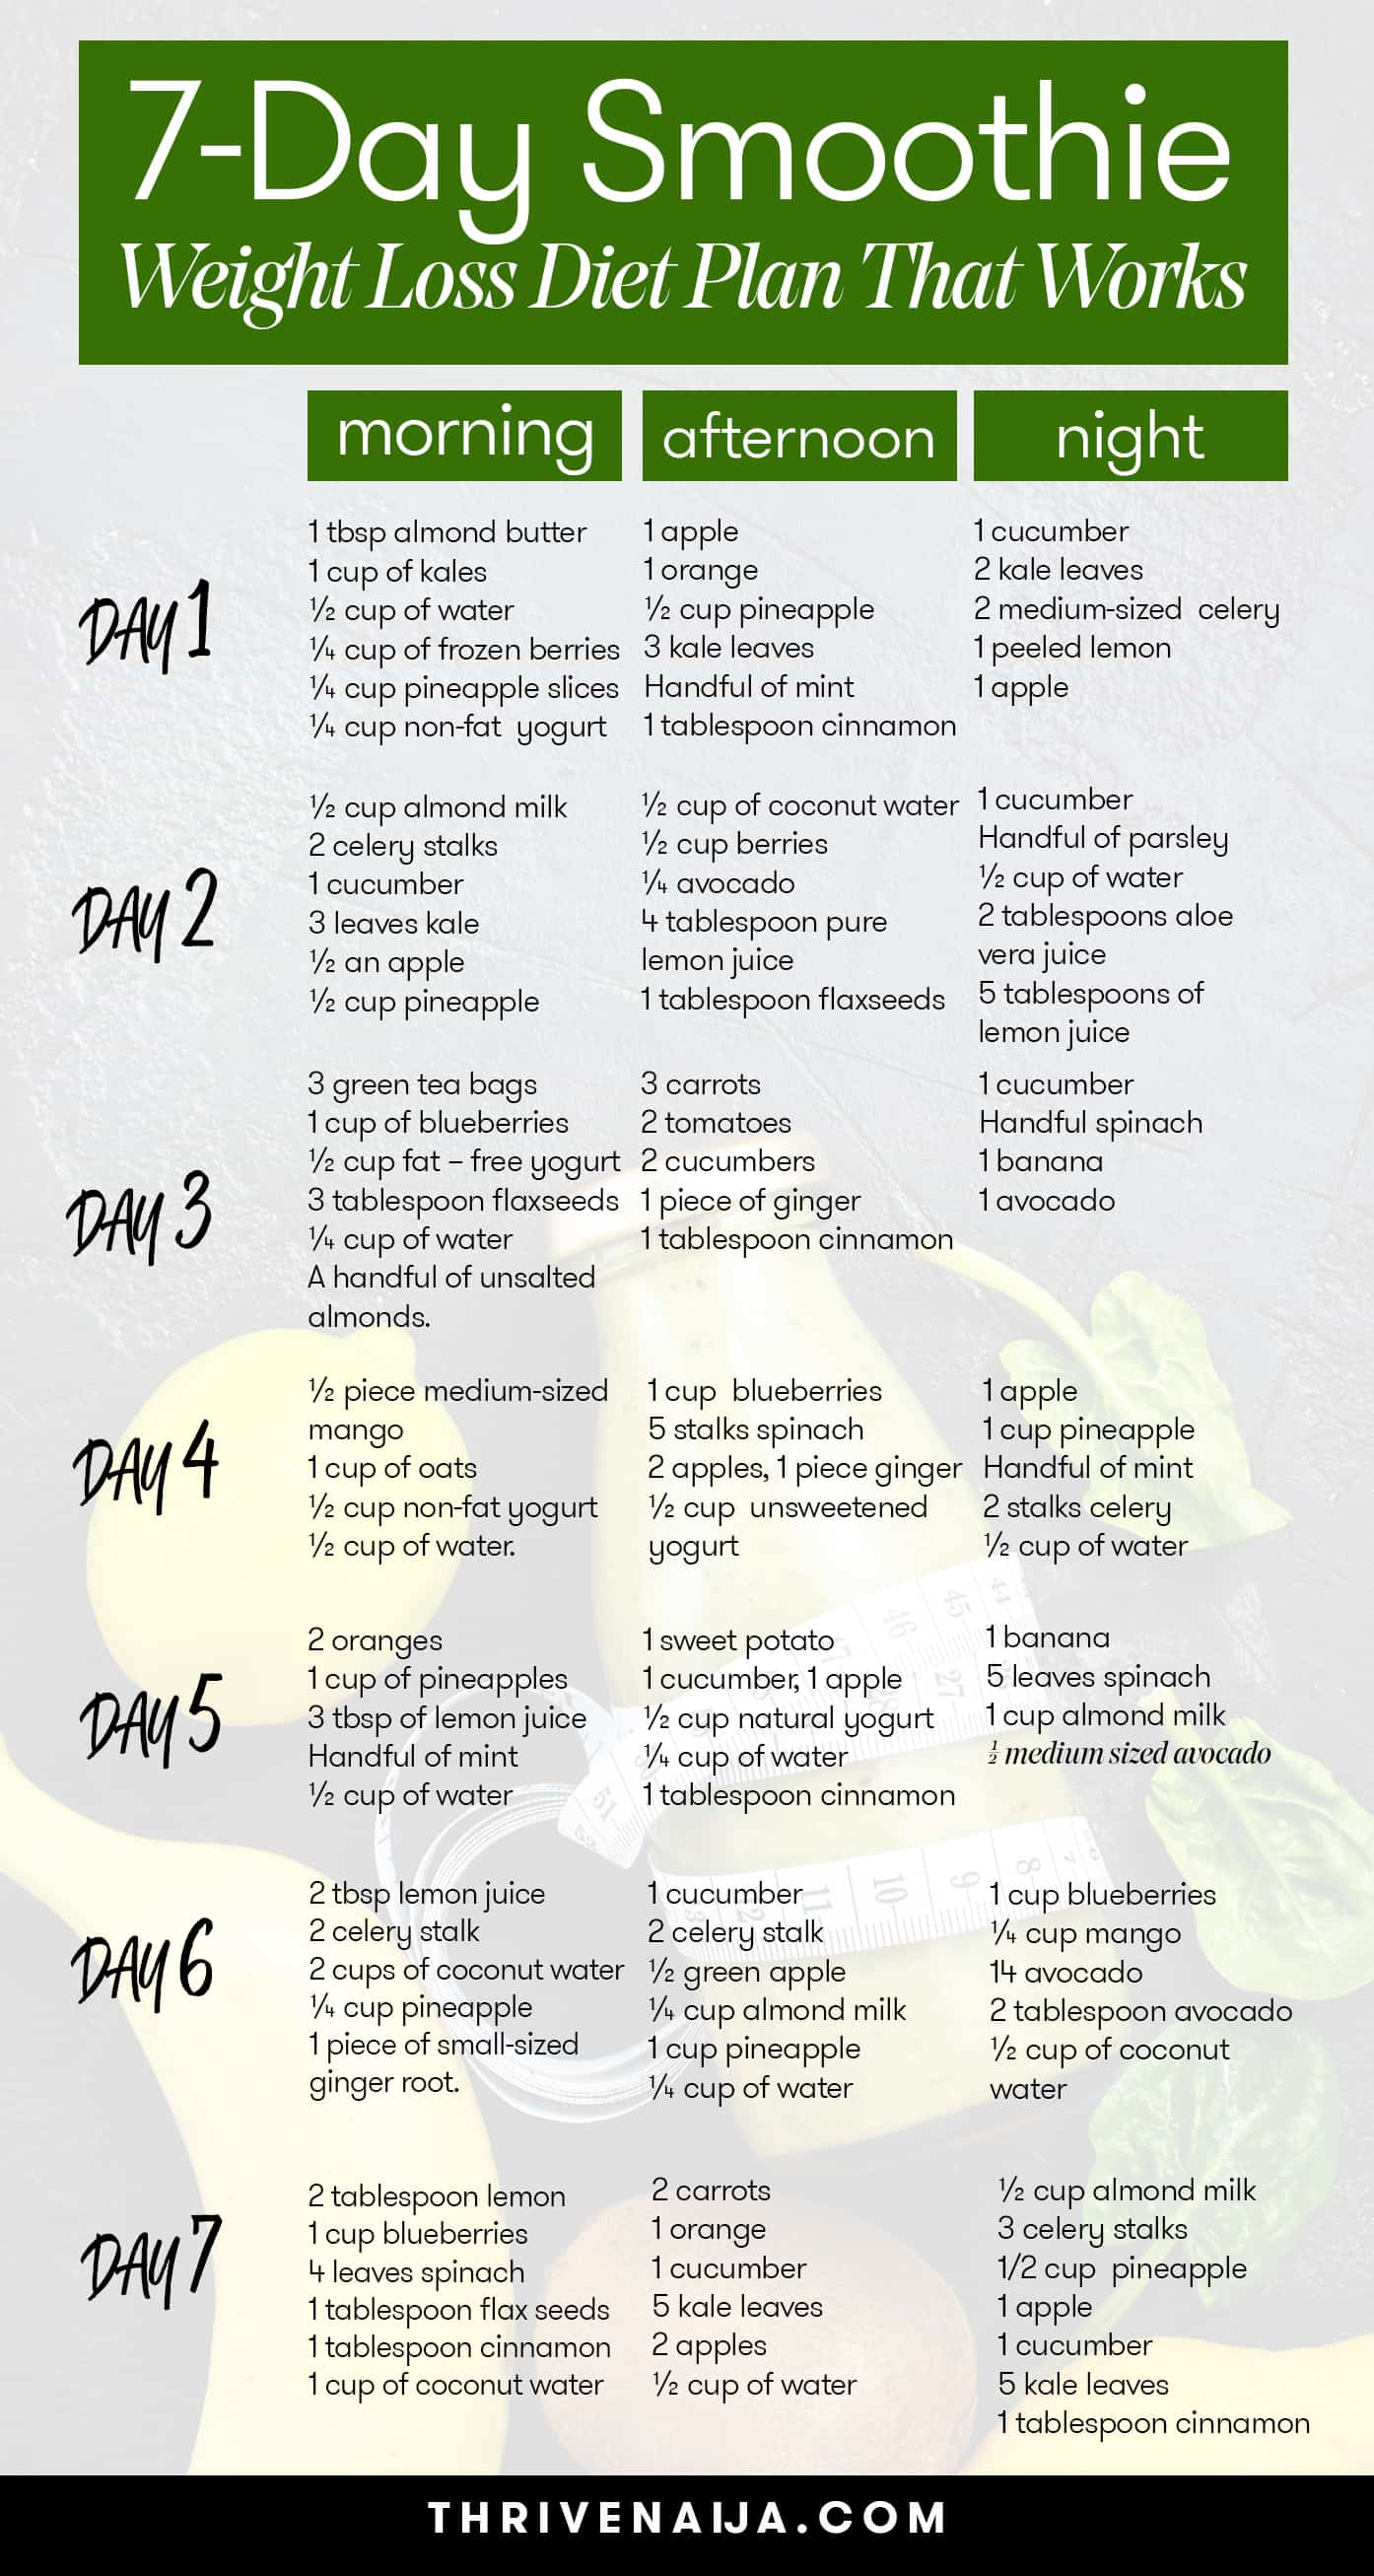 7-day smoothie weight loss diet plan printable